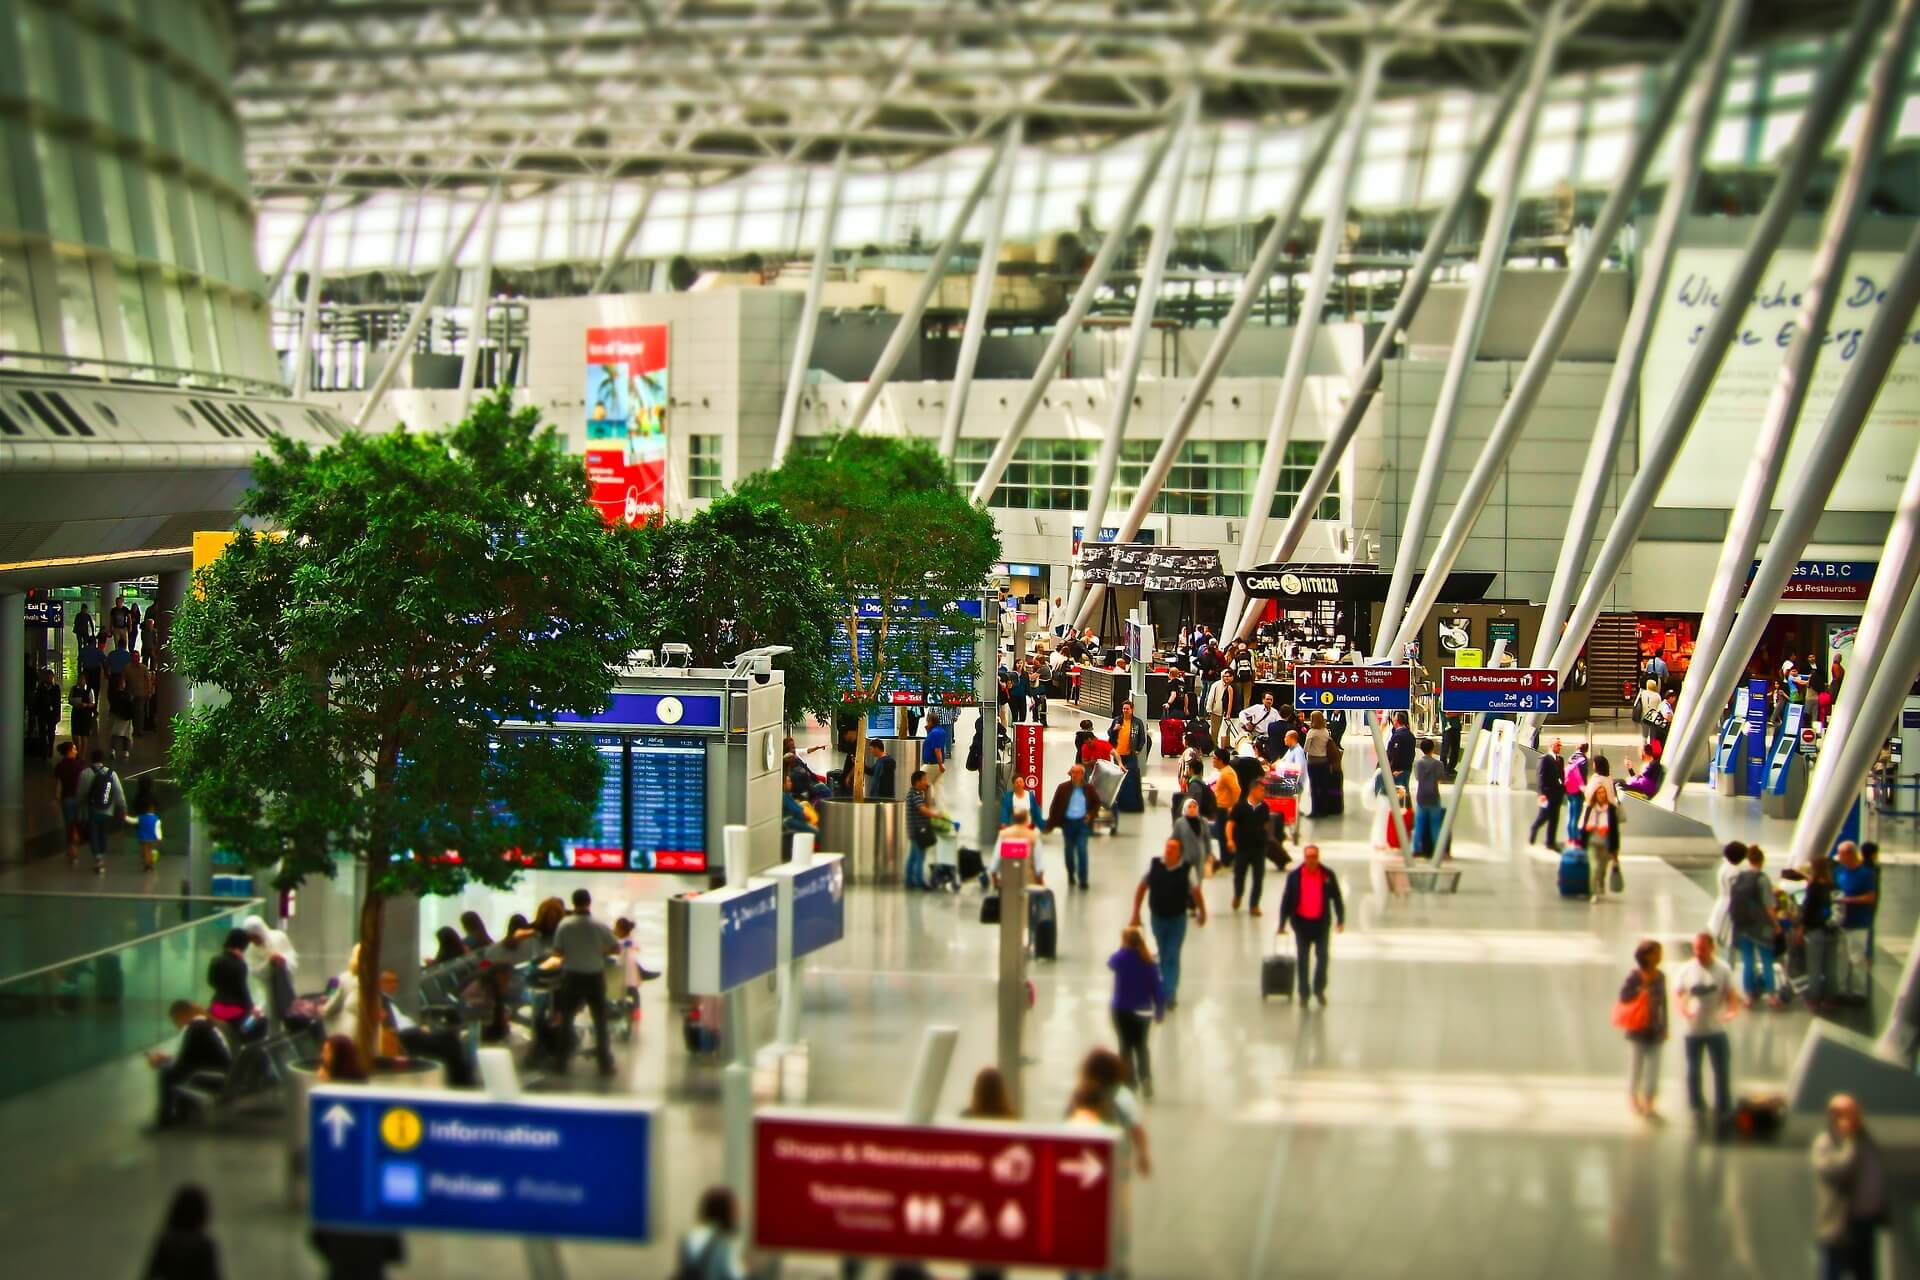 Internet of Things solutions for airports